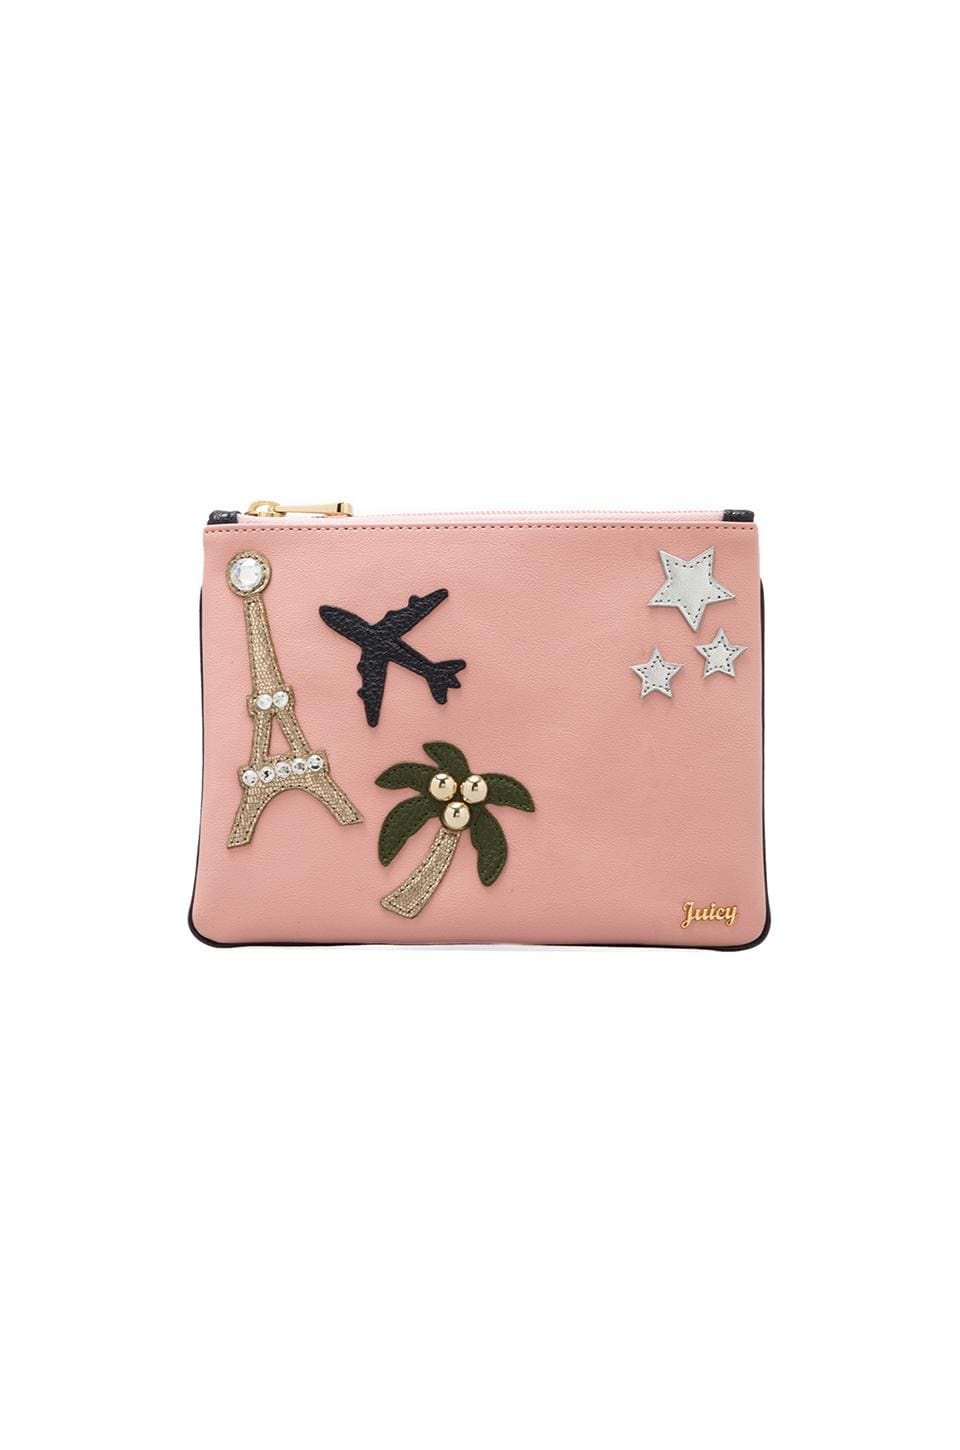 Juicy Couture Glamour Girl Flat Pouch in Light Pink